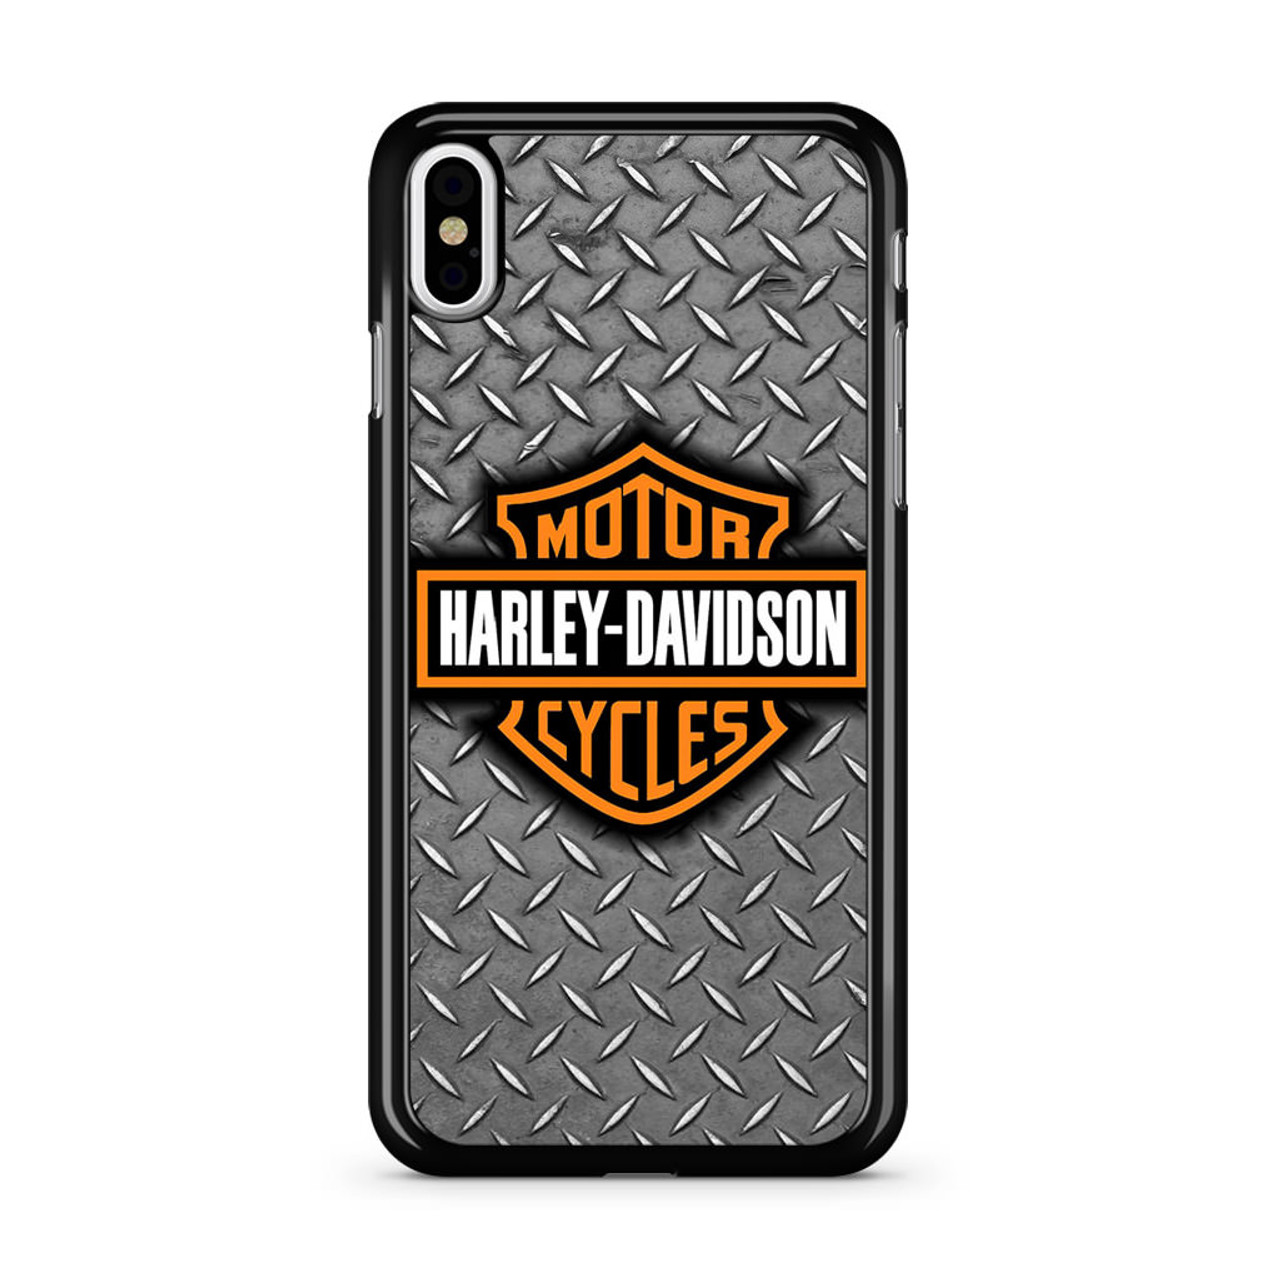 huge selection of 1c3b1 58278 Harley Davidson Motor Logo iPhone X Case